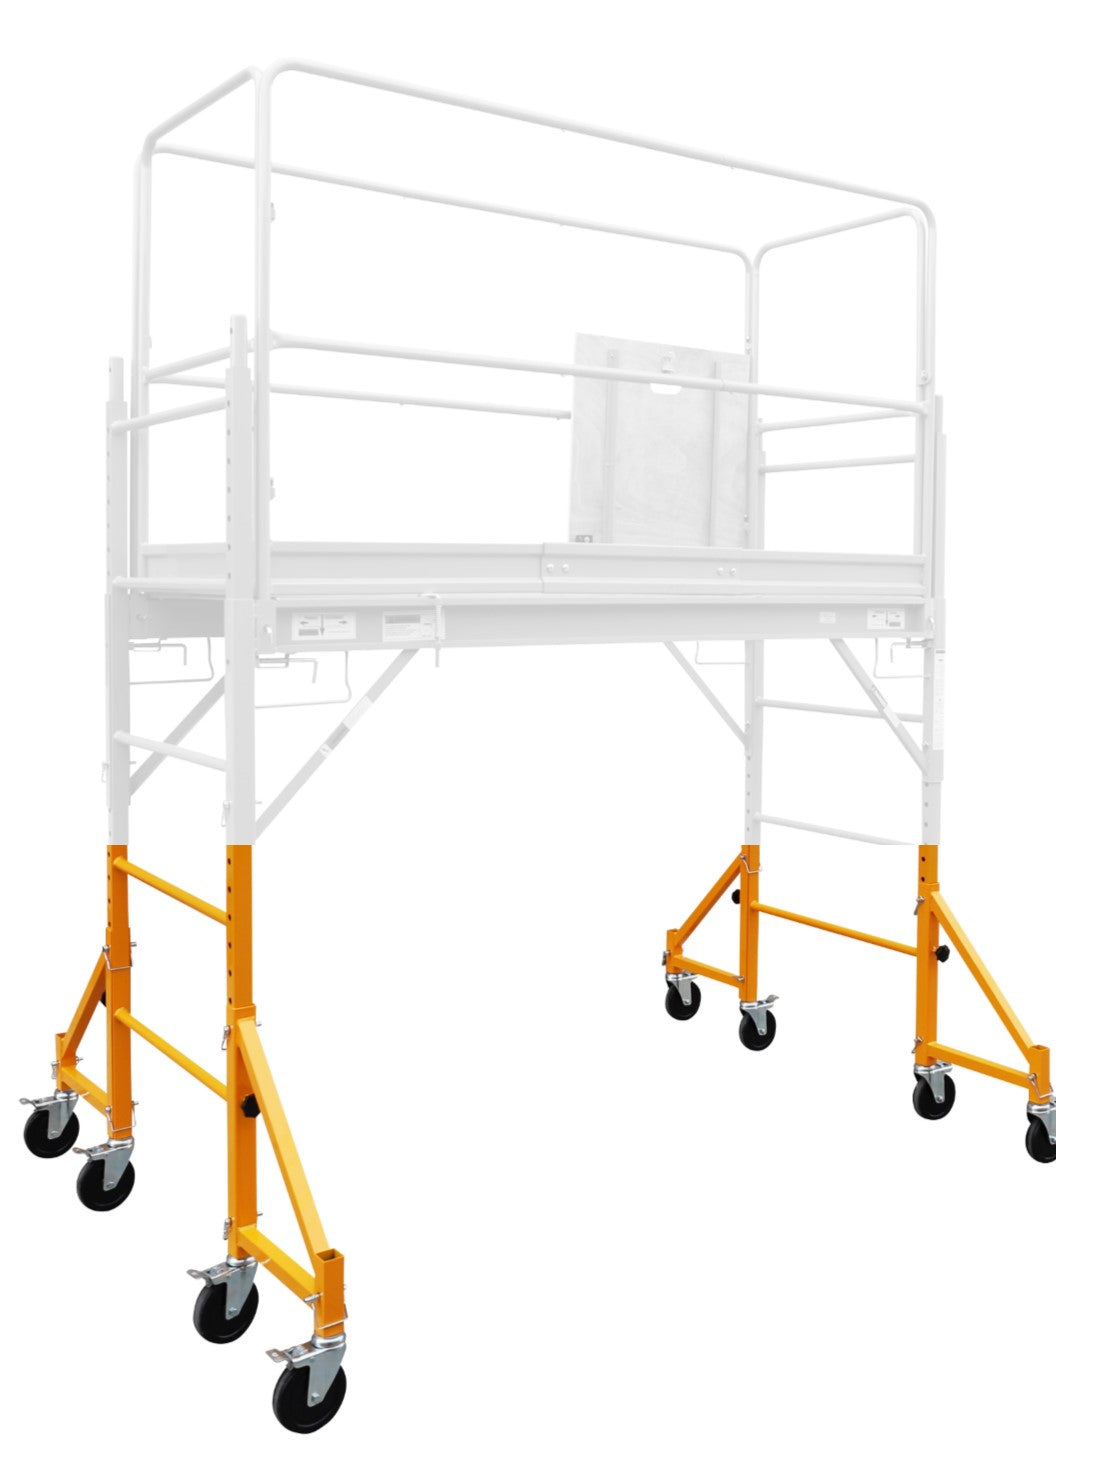 4 Outriggers with Locking Pins for 6' or 12' scaffold OSHA Approved